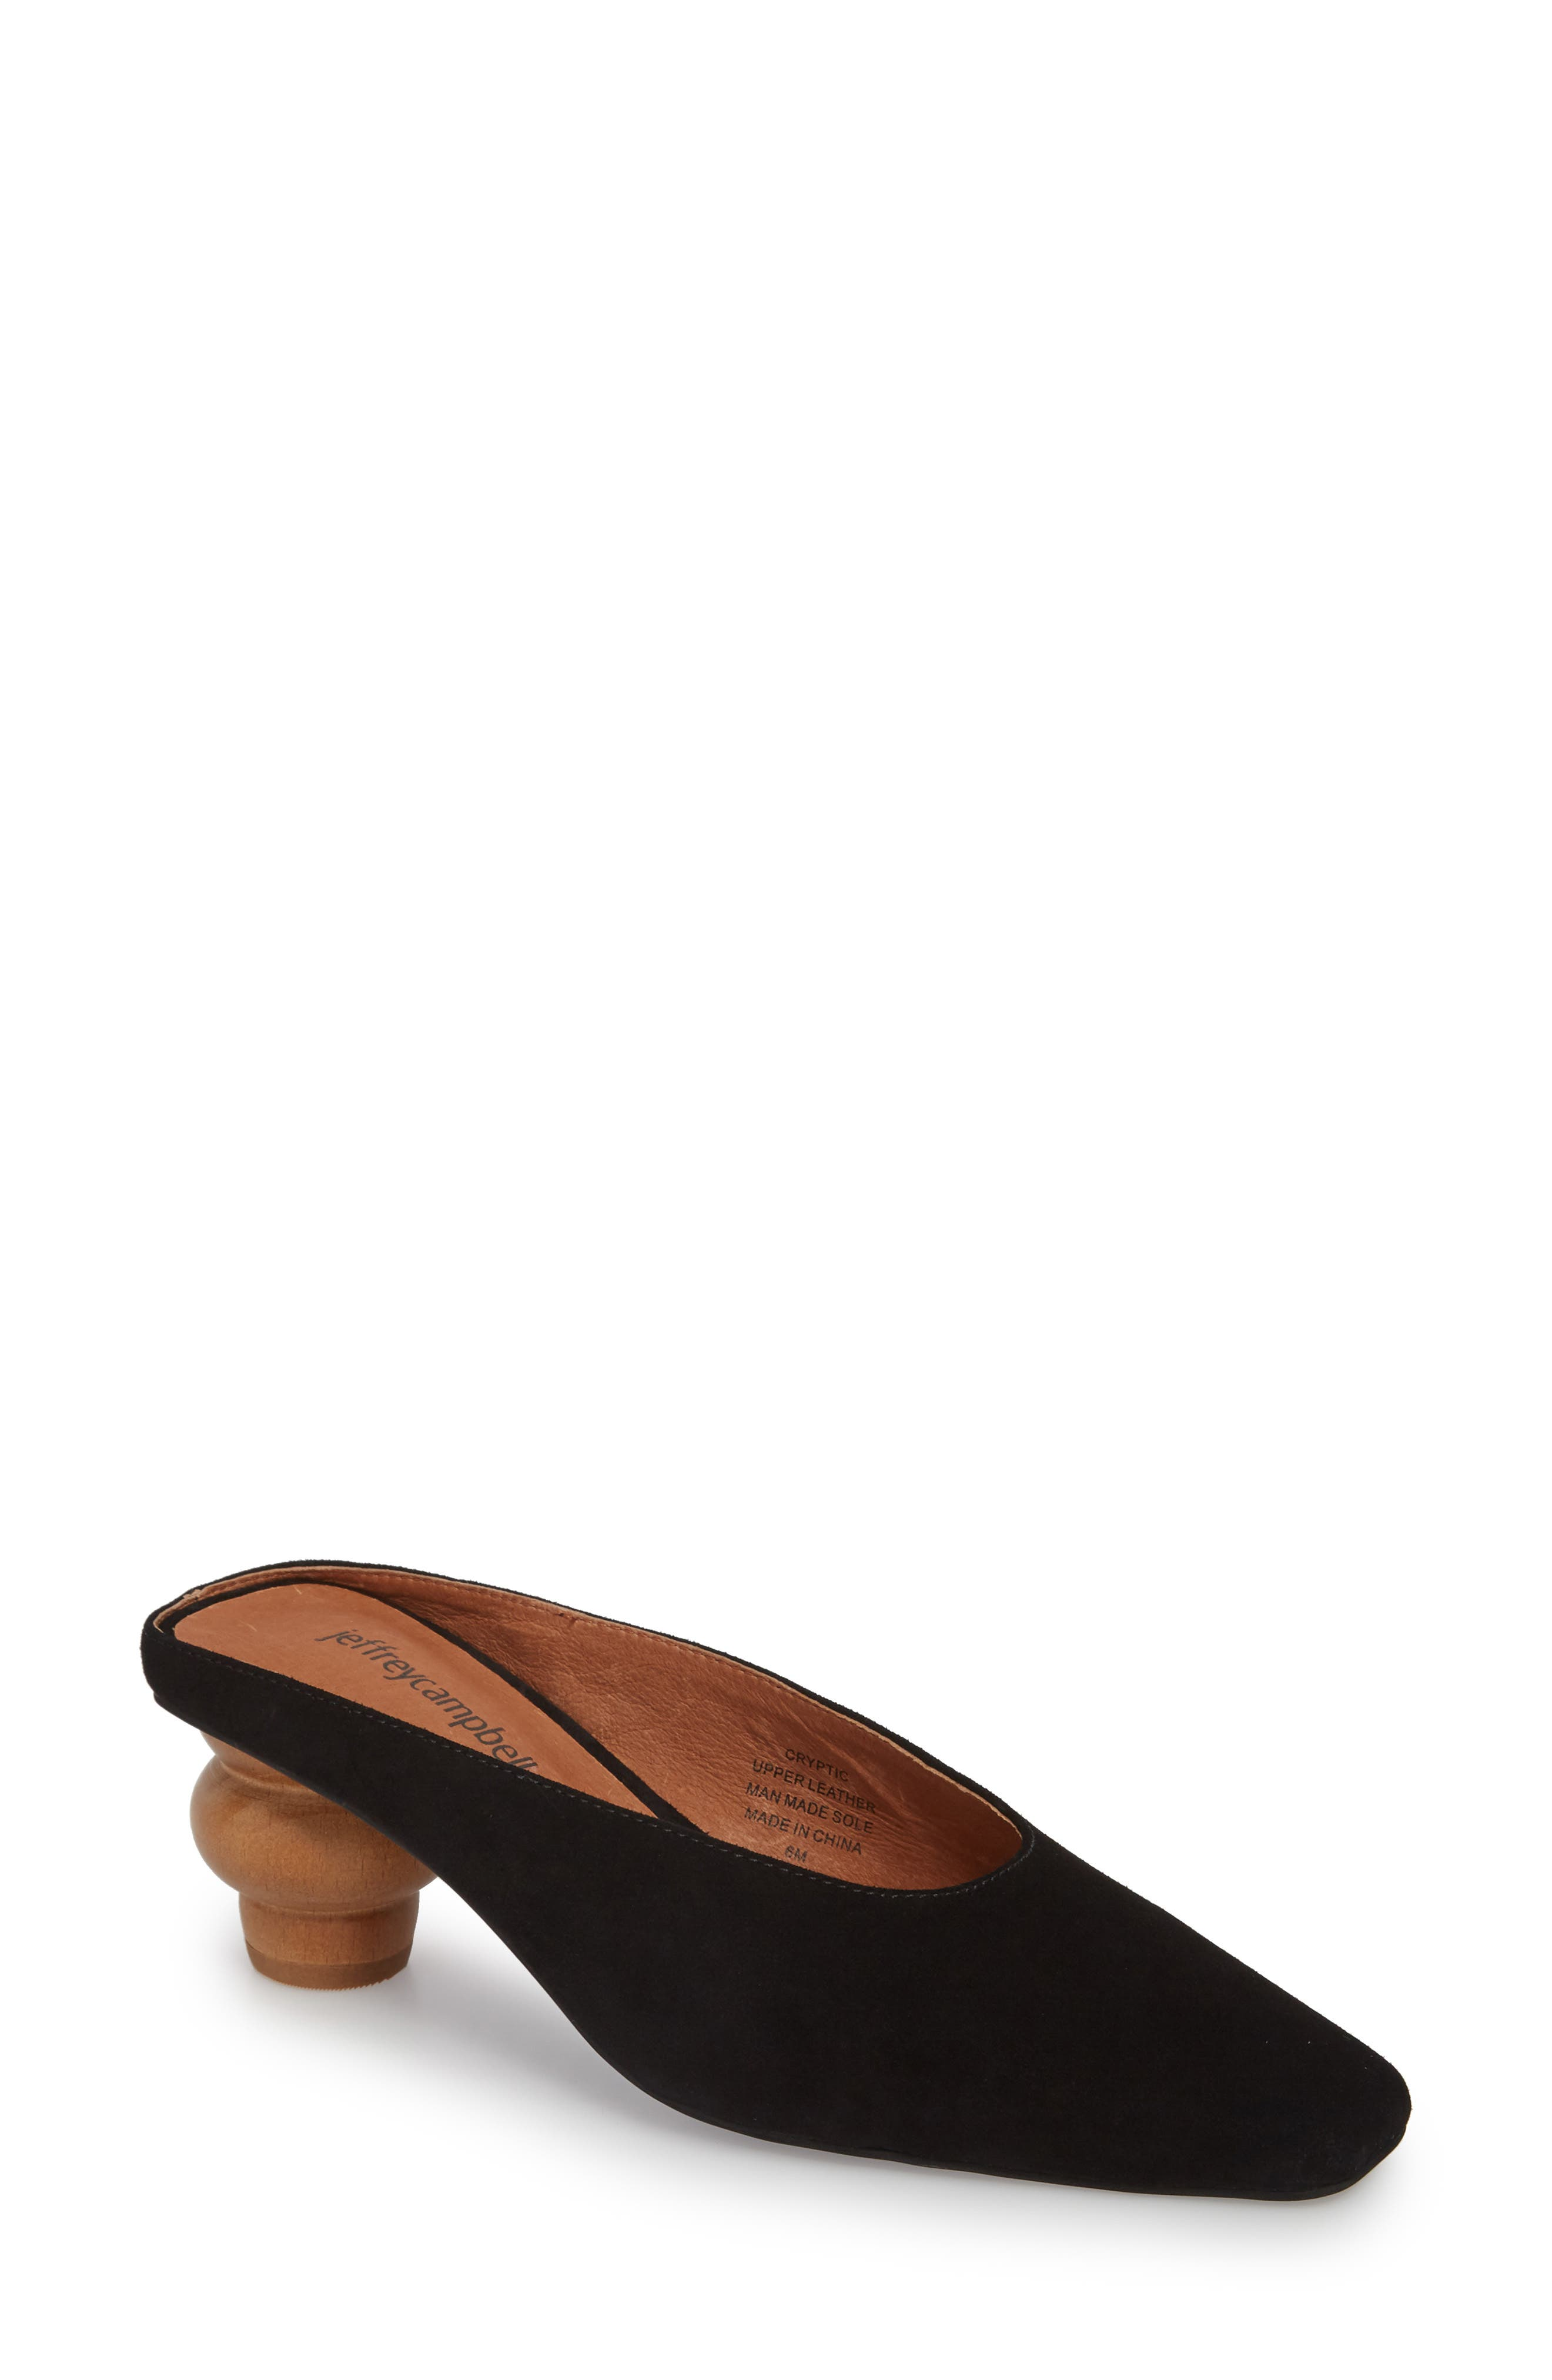 JEFFREY CAMPBELL Cryptic Statement Heel Mule, Main, color, 005